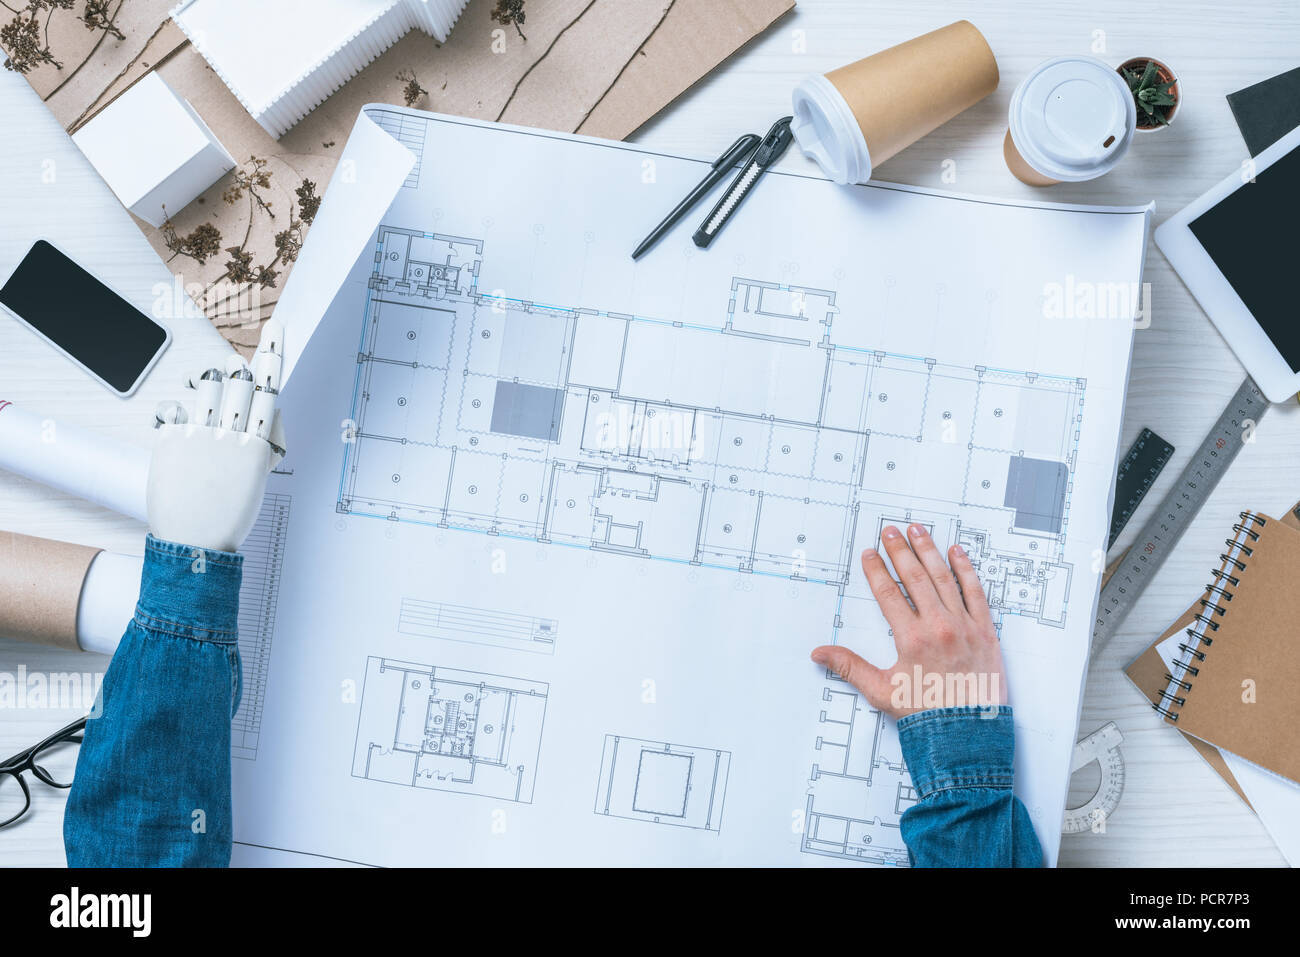 partial view of male architect with prosthetic arm working with blueprint at table with rulers, smartphone and digital tablet - Stock Image